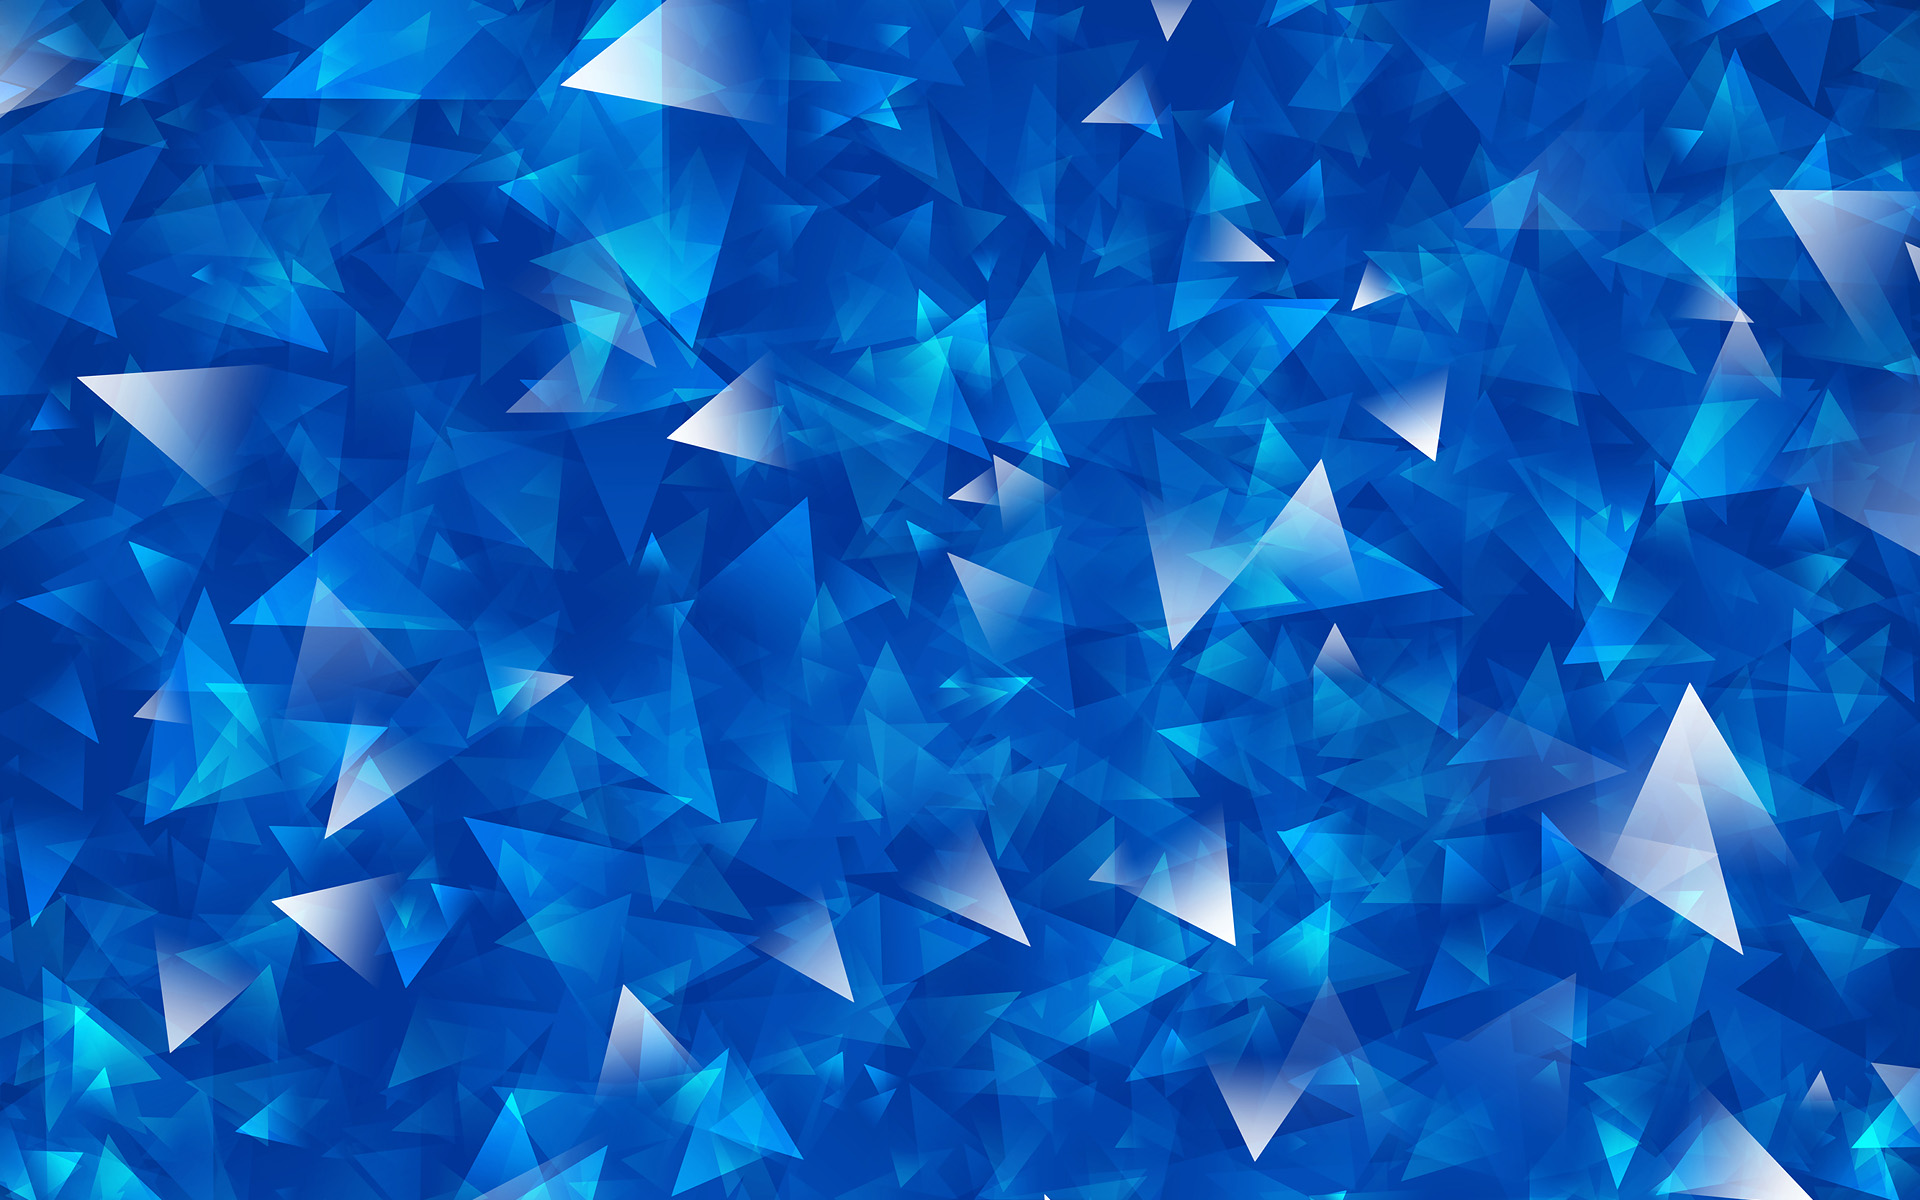 Hd Abstract Blue Background: Blue Full HD Wallpaper And Background